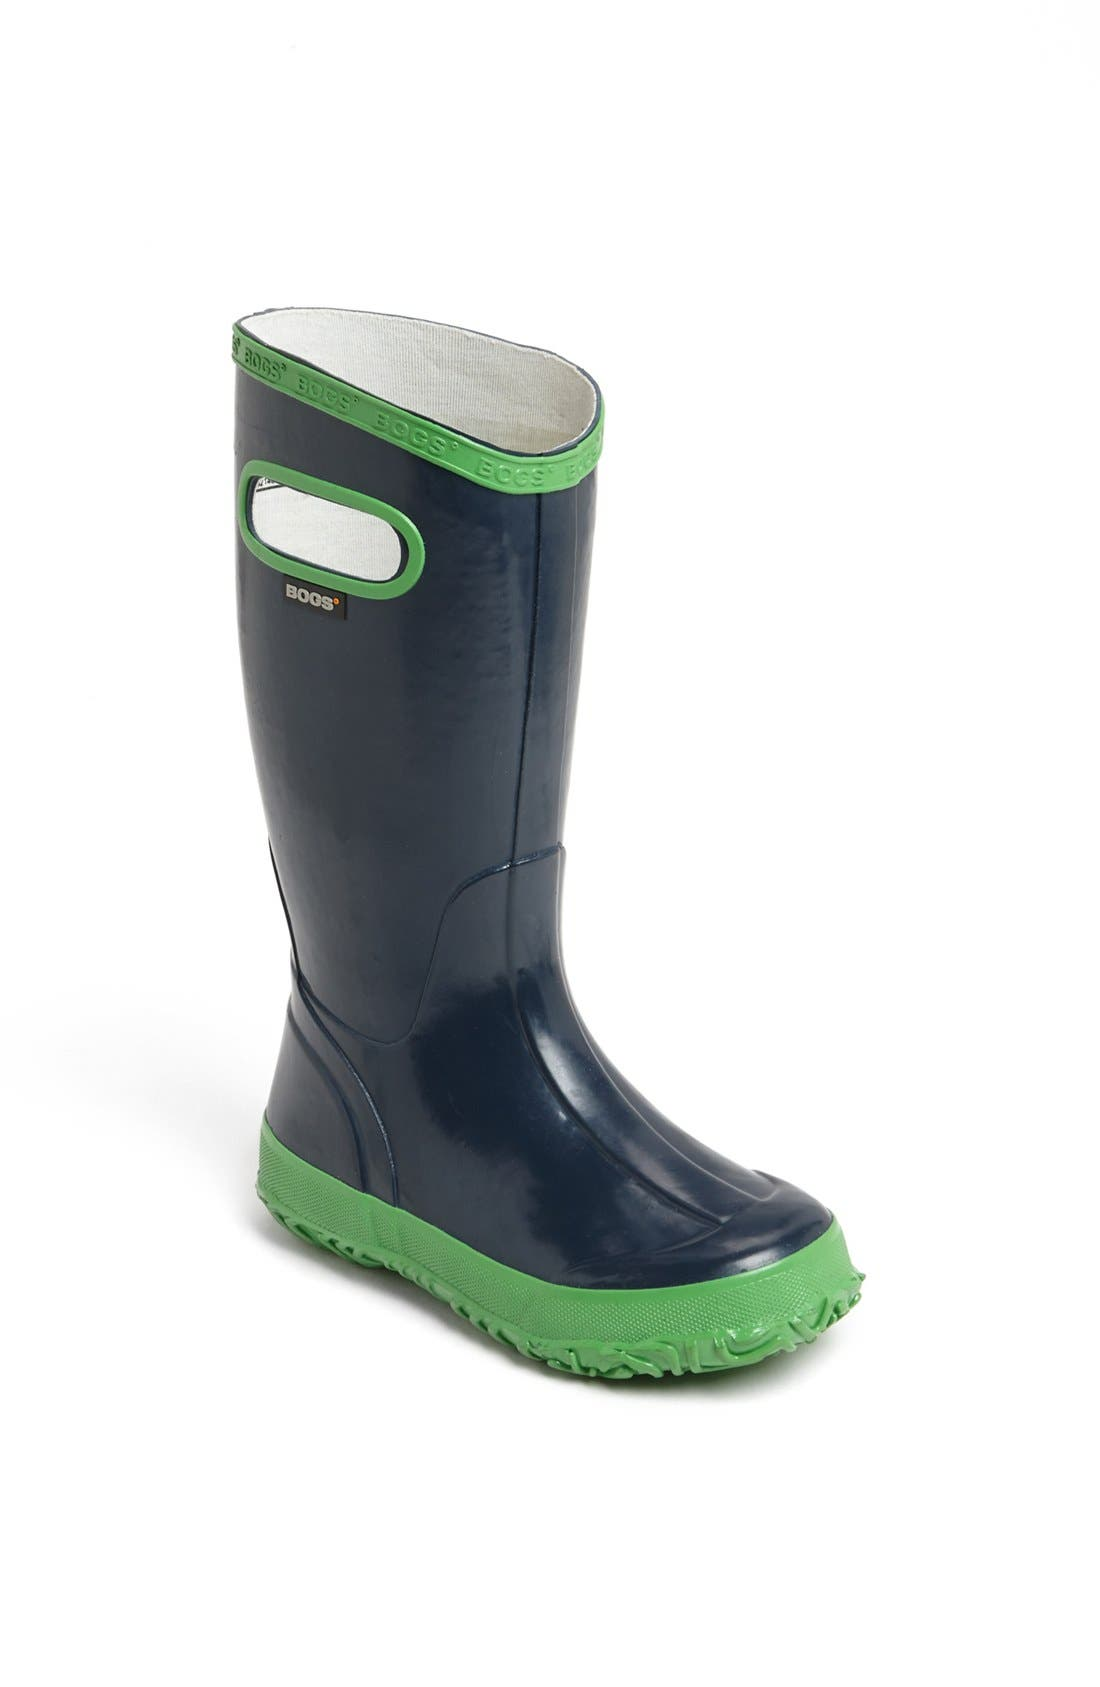 Bogs Rubber Rain Boot (Walker, Toddler, Little Kid & Big Kid)